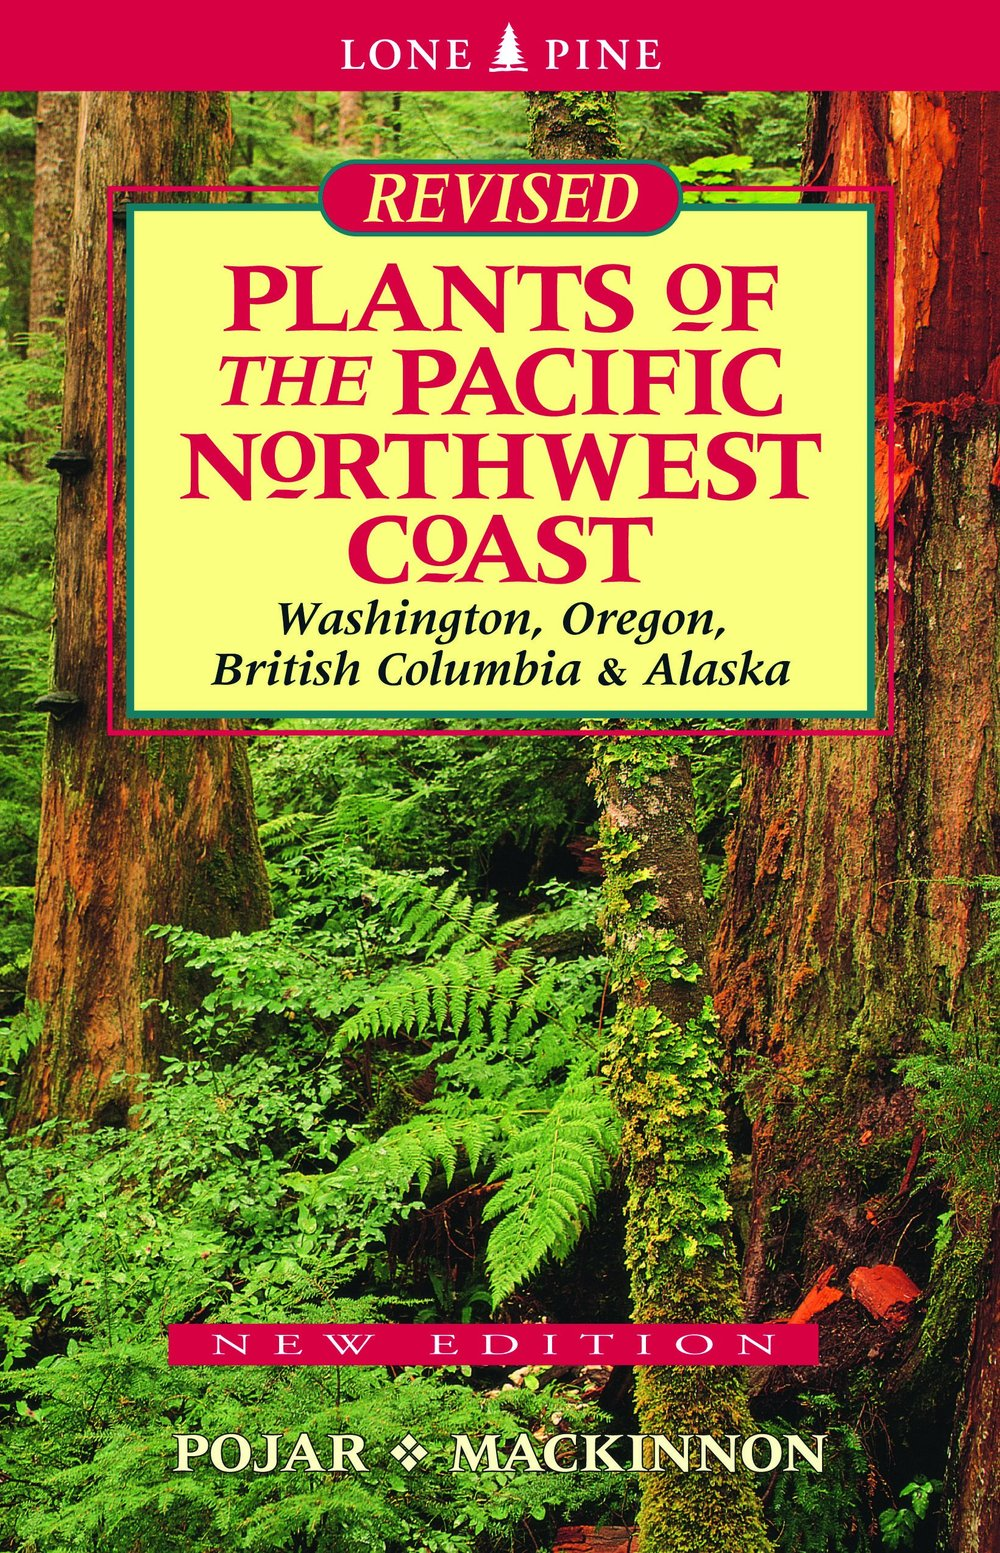 Plants of the Pacific Northwest Coast by Jim Pojar and Andy MacKinnon